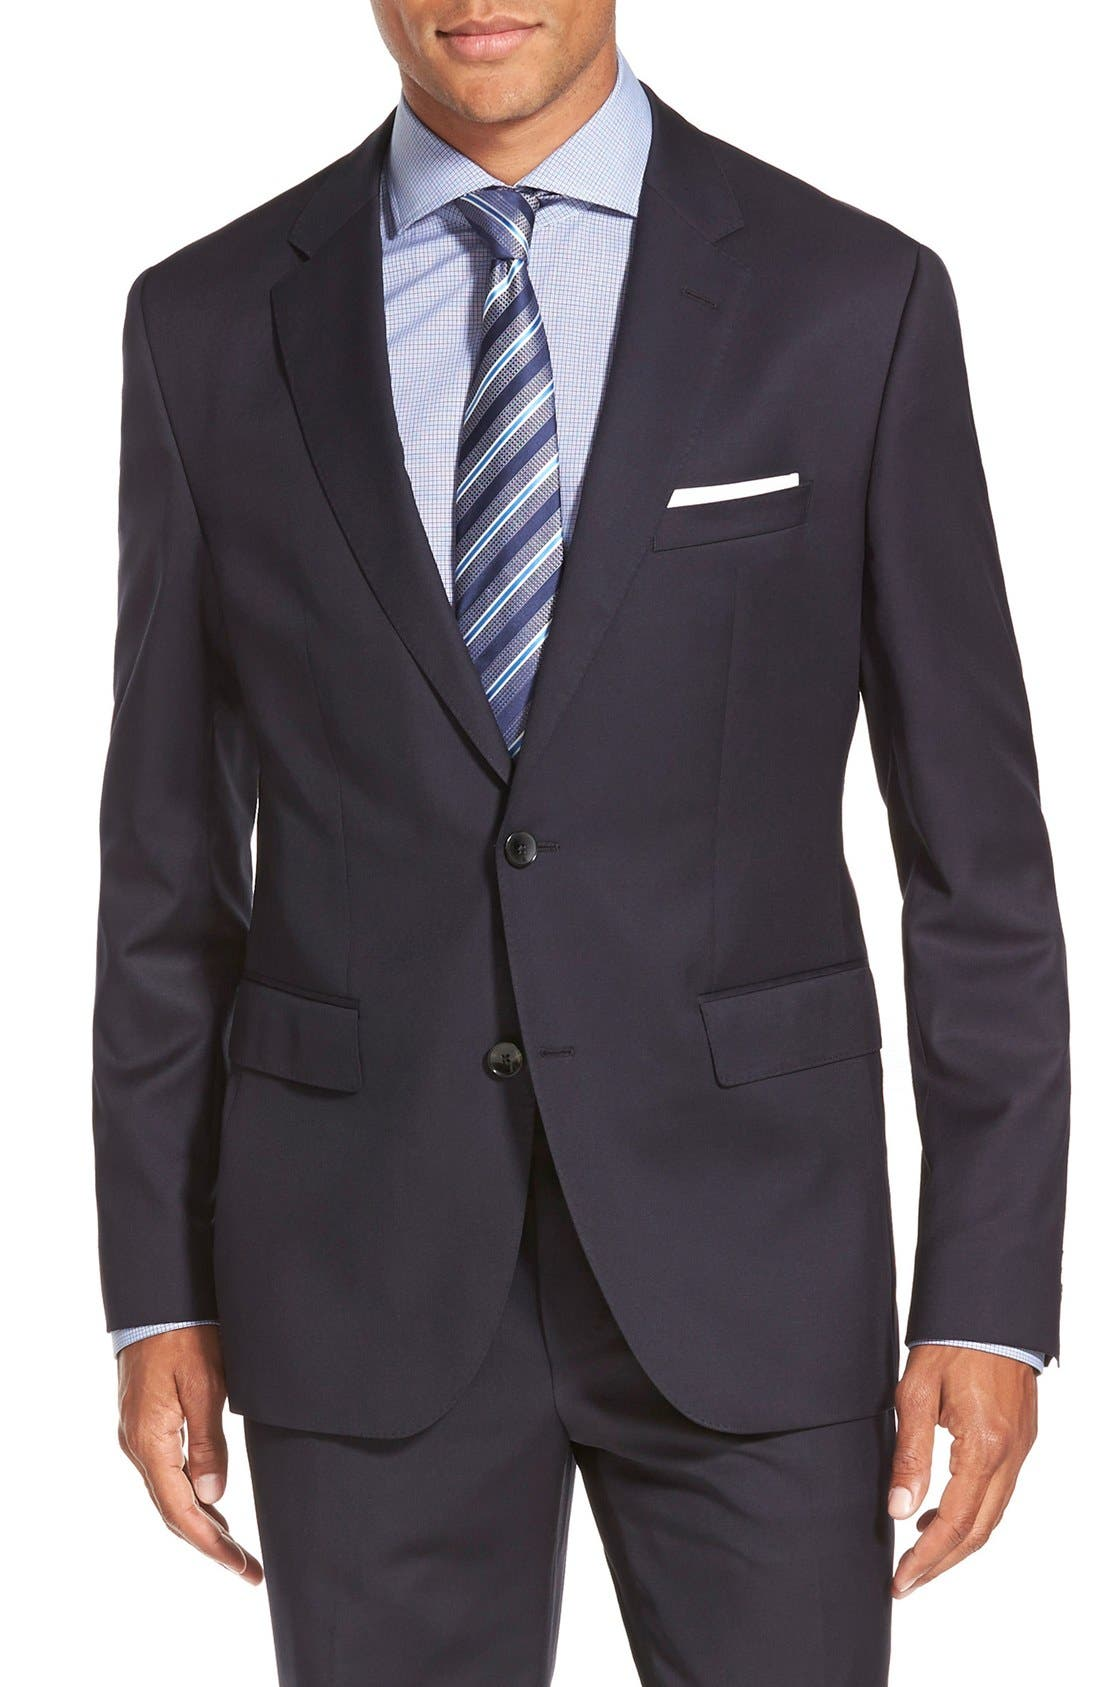 Johnstons/Lenon Classic Fit Wool Suit,                             Alternate thumbnail 4, color,                             Navy